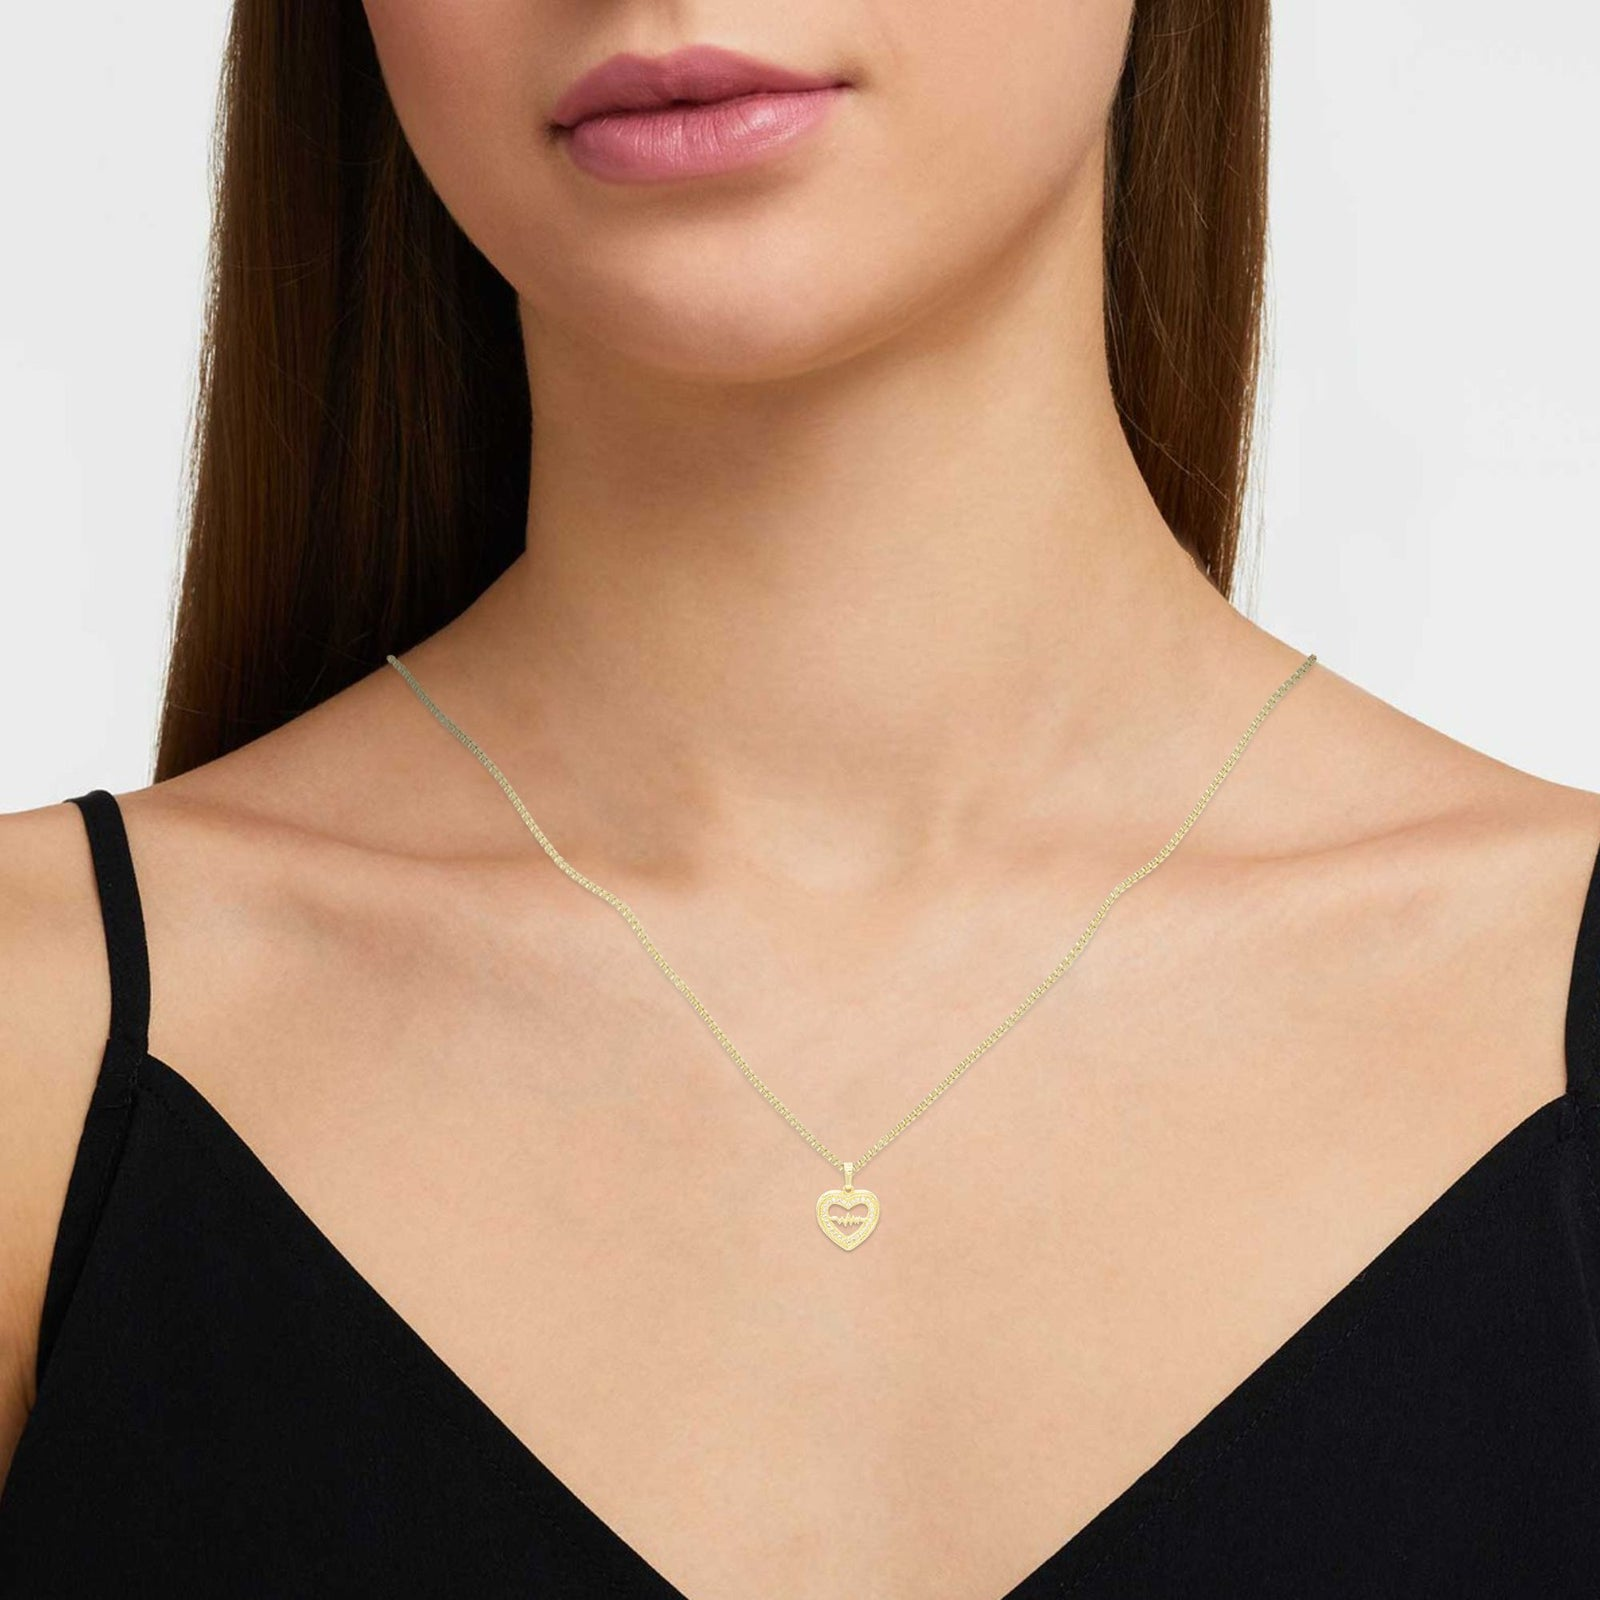 Heart Pulsing Cubic Zirconia Pendant With Necklace Set 14K Gold Filled